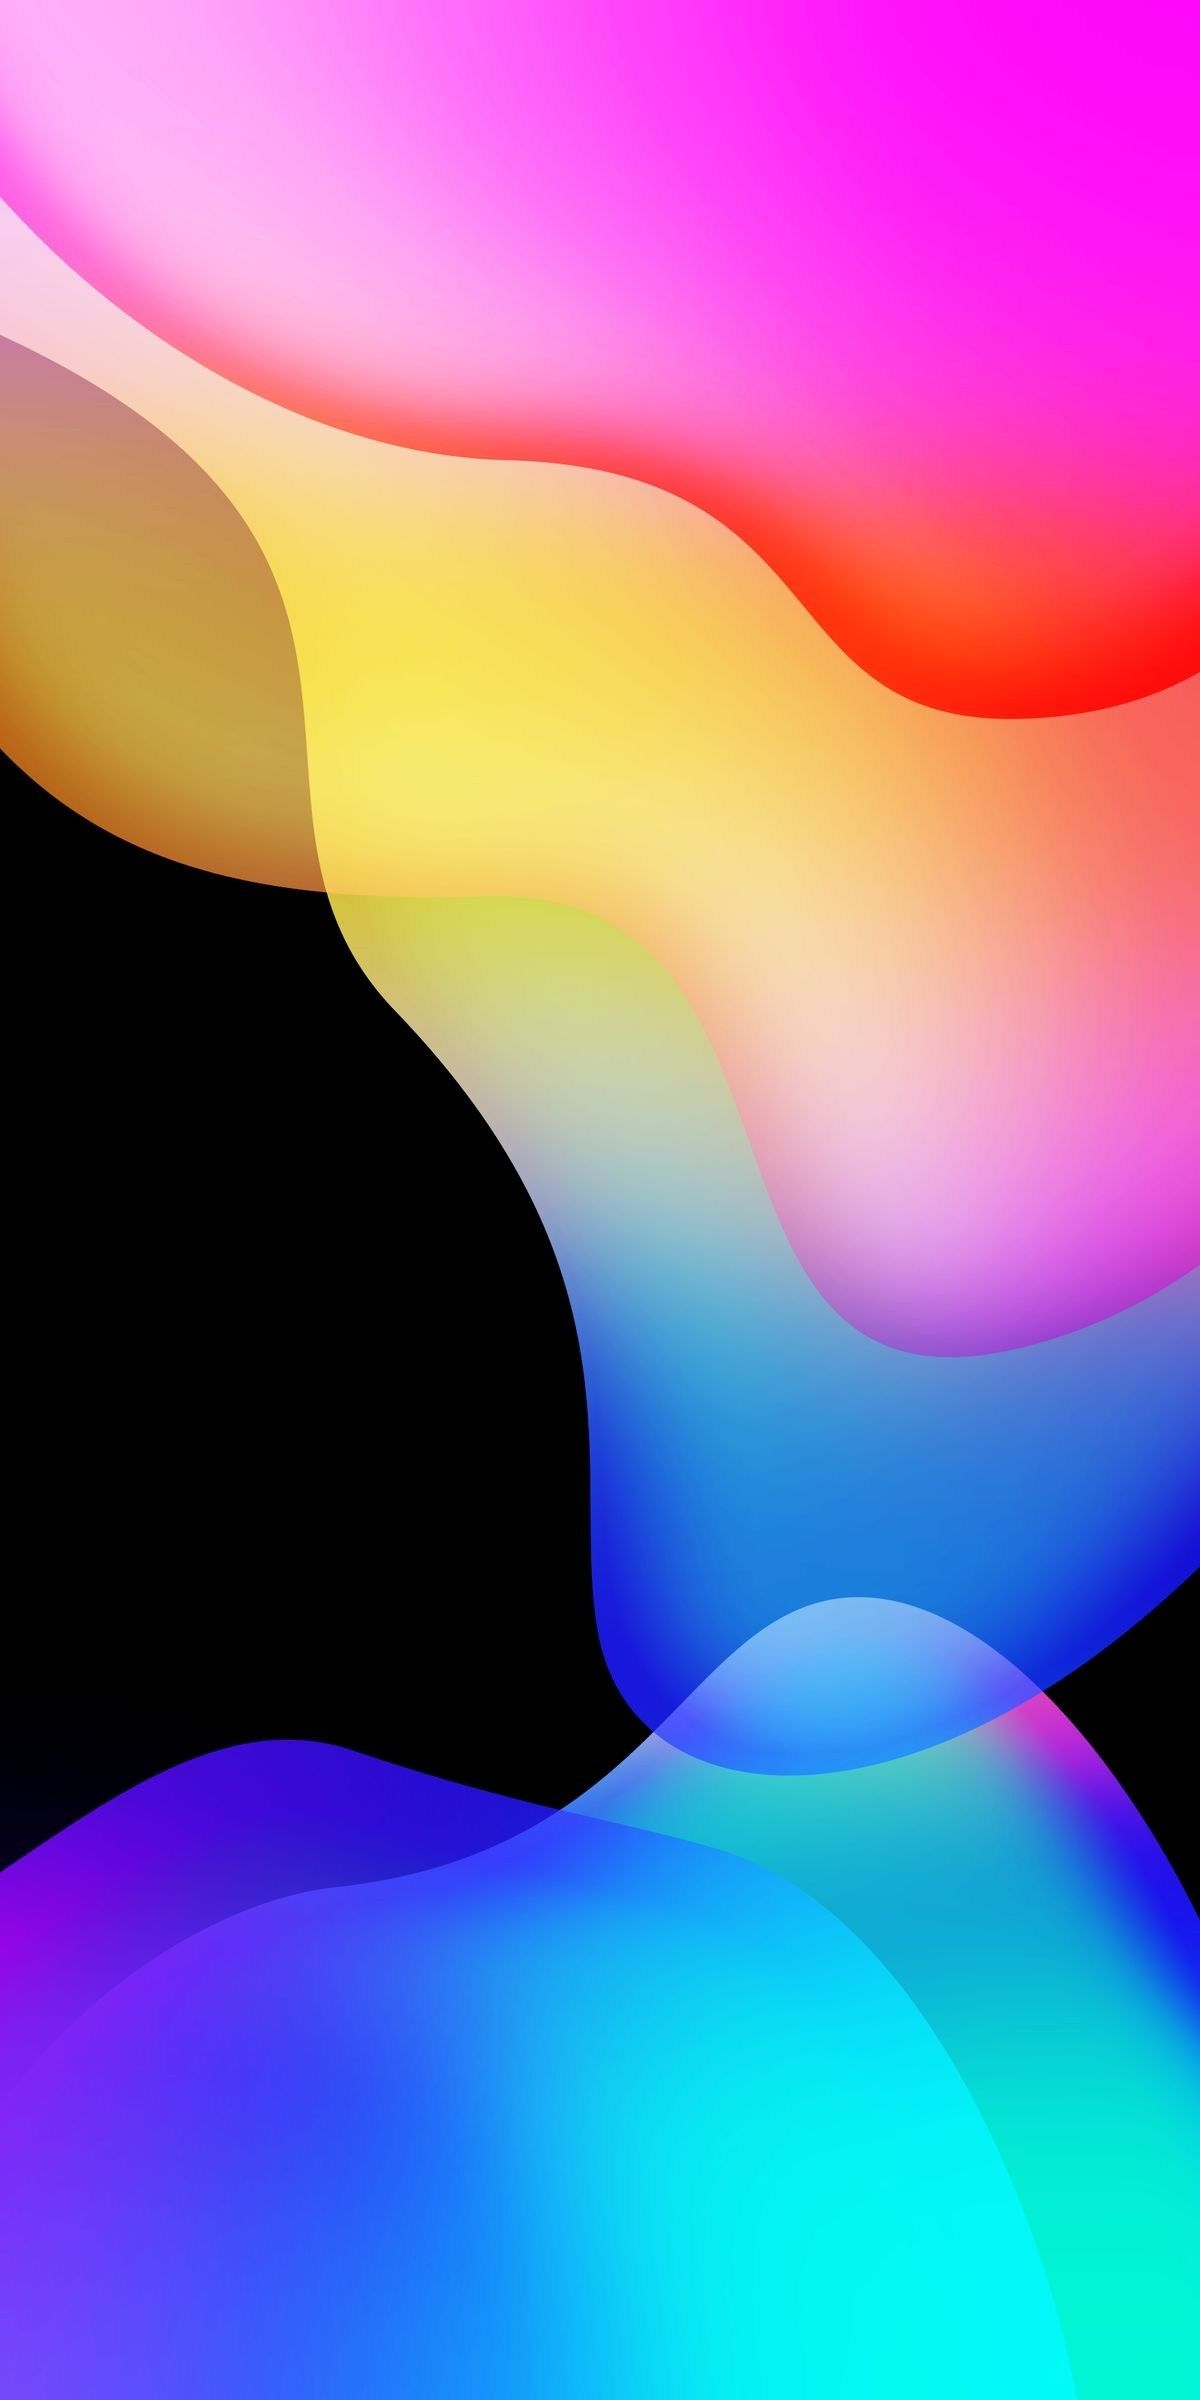 Wallpaper – iPhone/Android   ONE PIXEL UNLIMITED